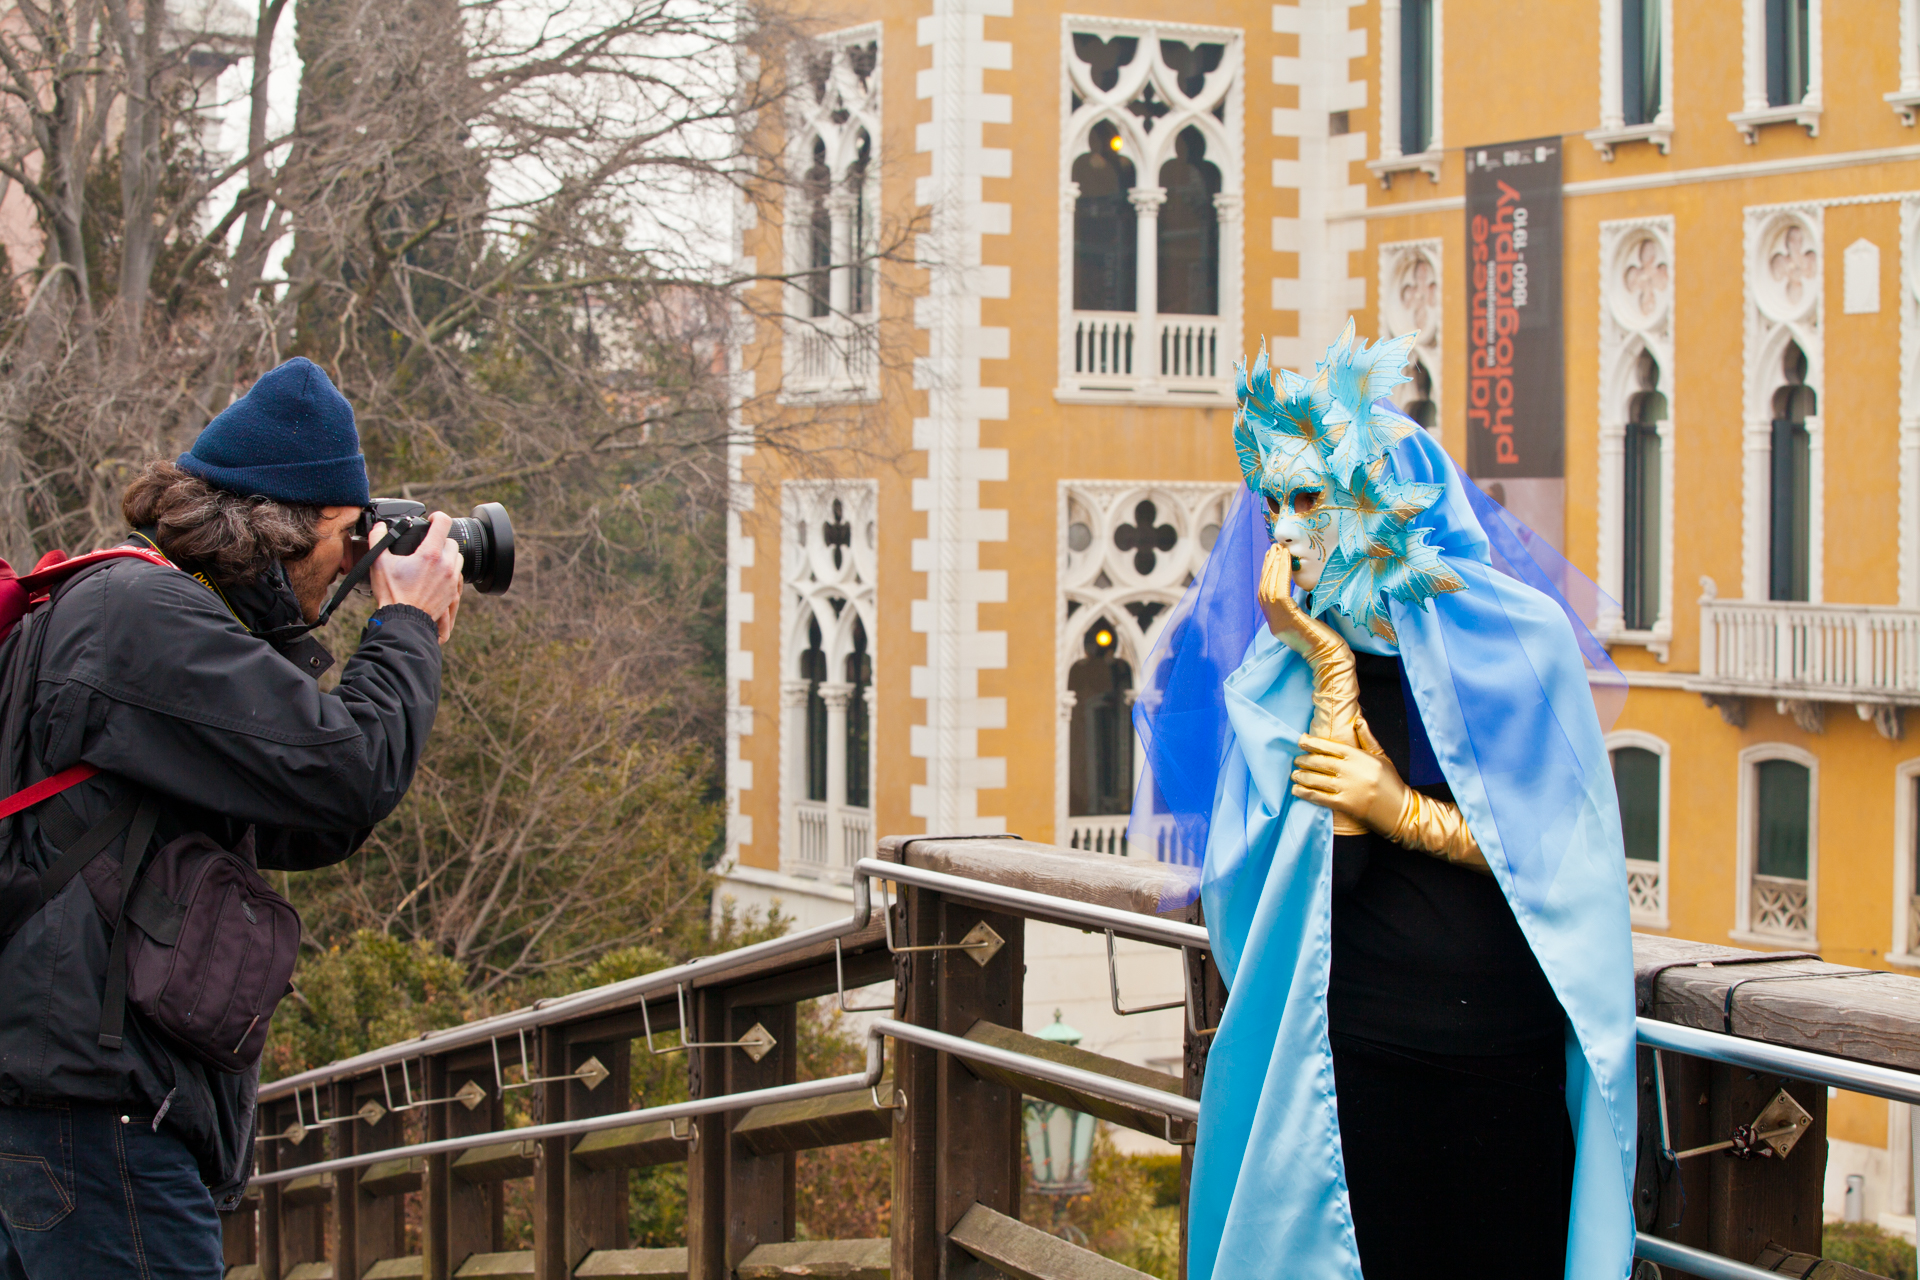 Photographer taking a picture of a reveler at Venice carnival